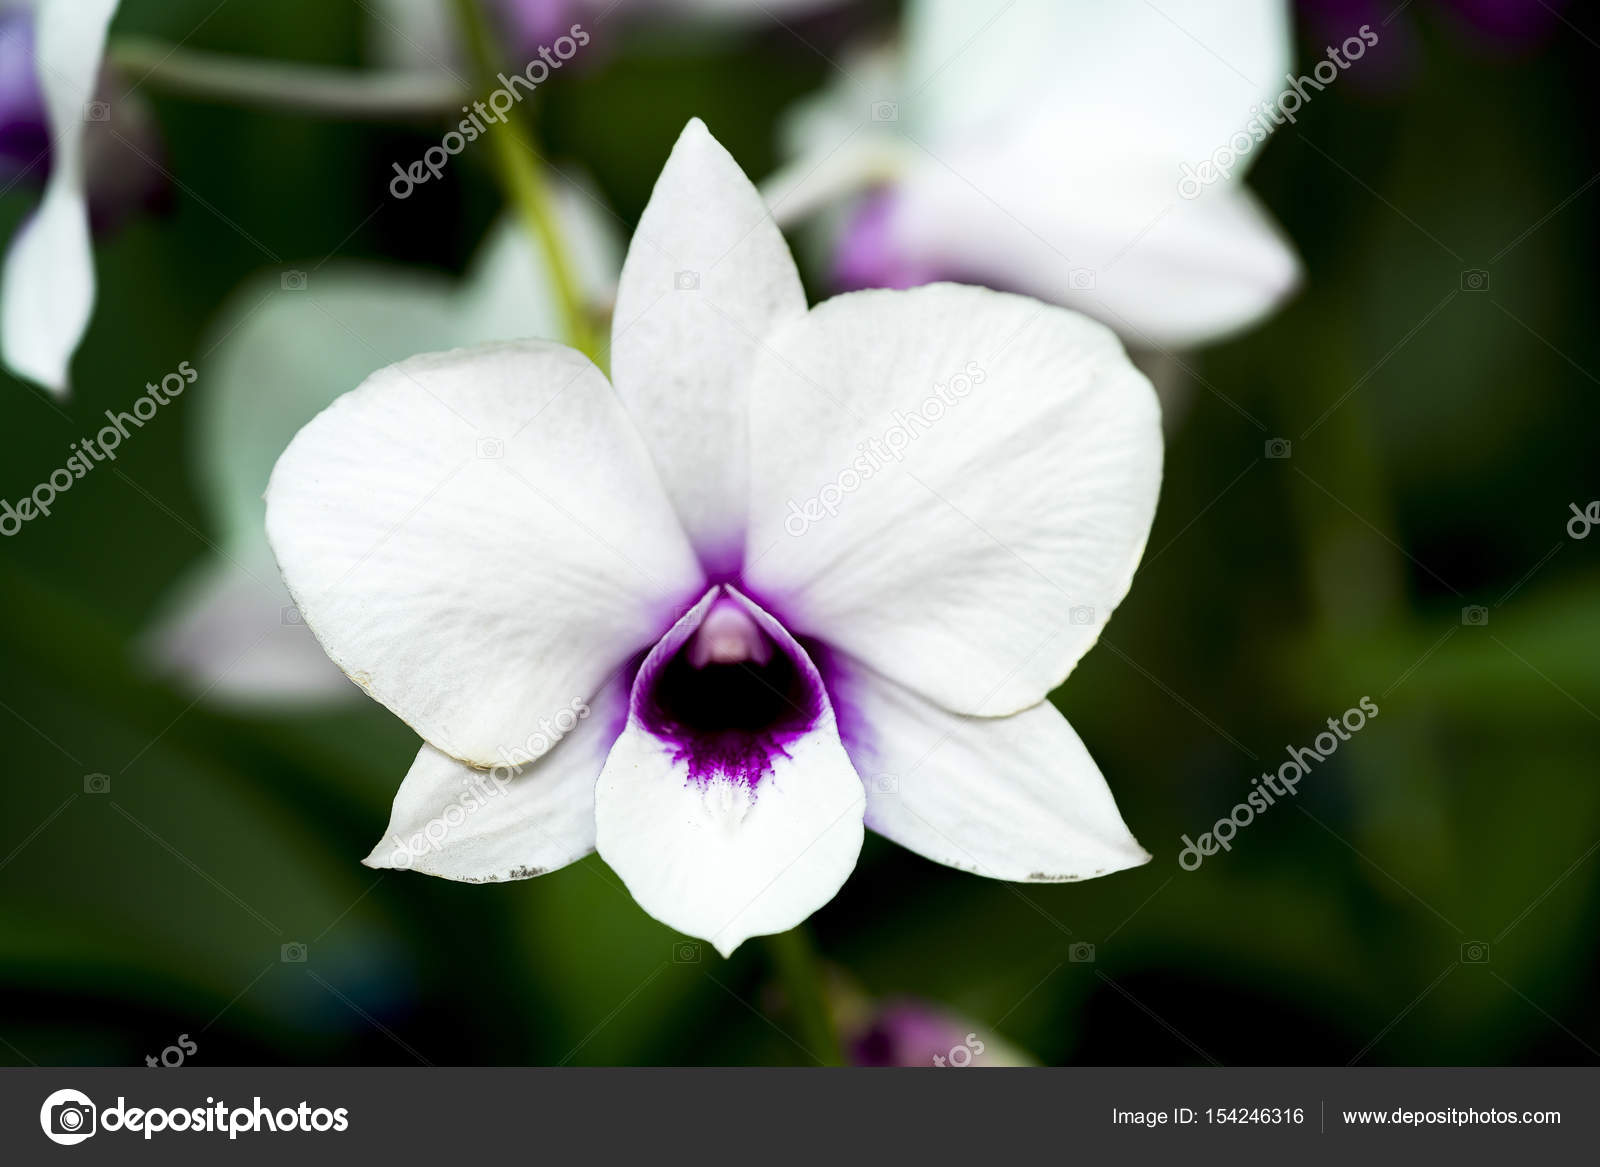 The Beautiful White Dendrobium Orchid With Dark Purple Center